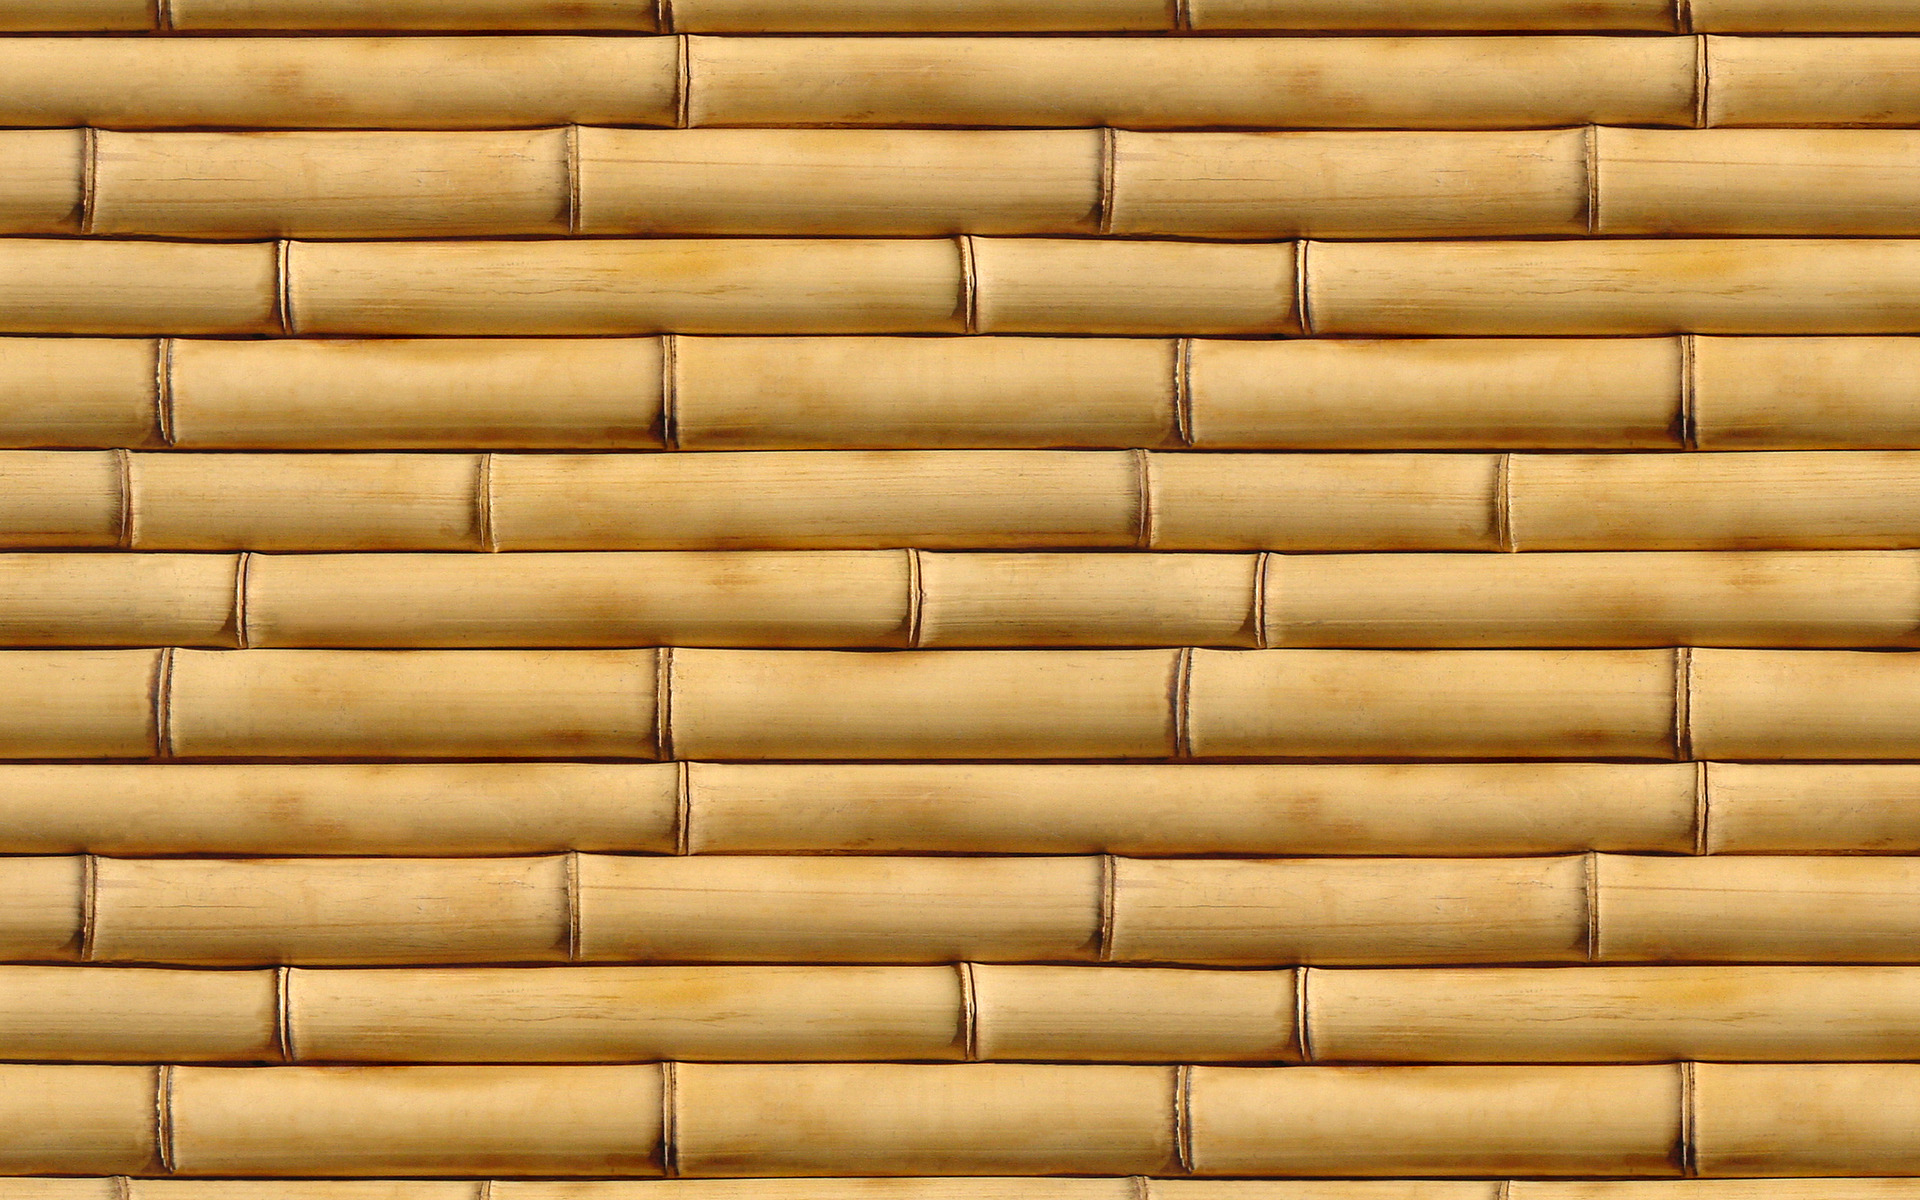 bamboo, tree wood, texture, download photo, background ...